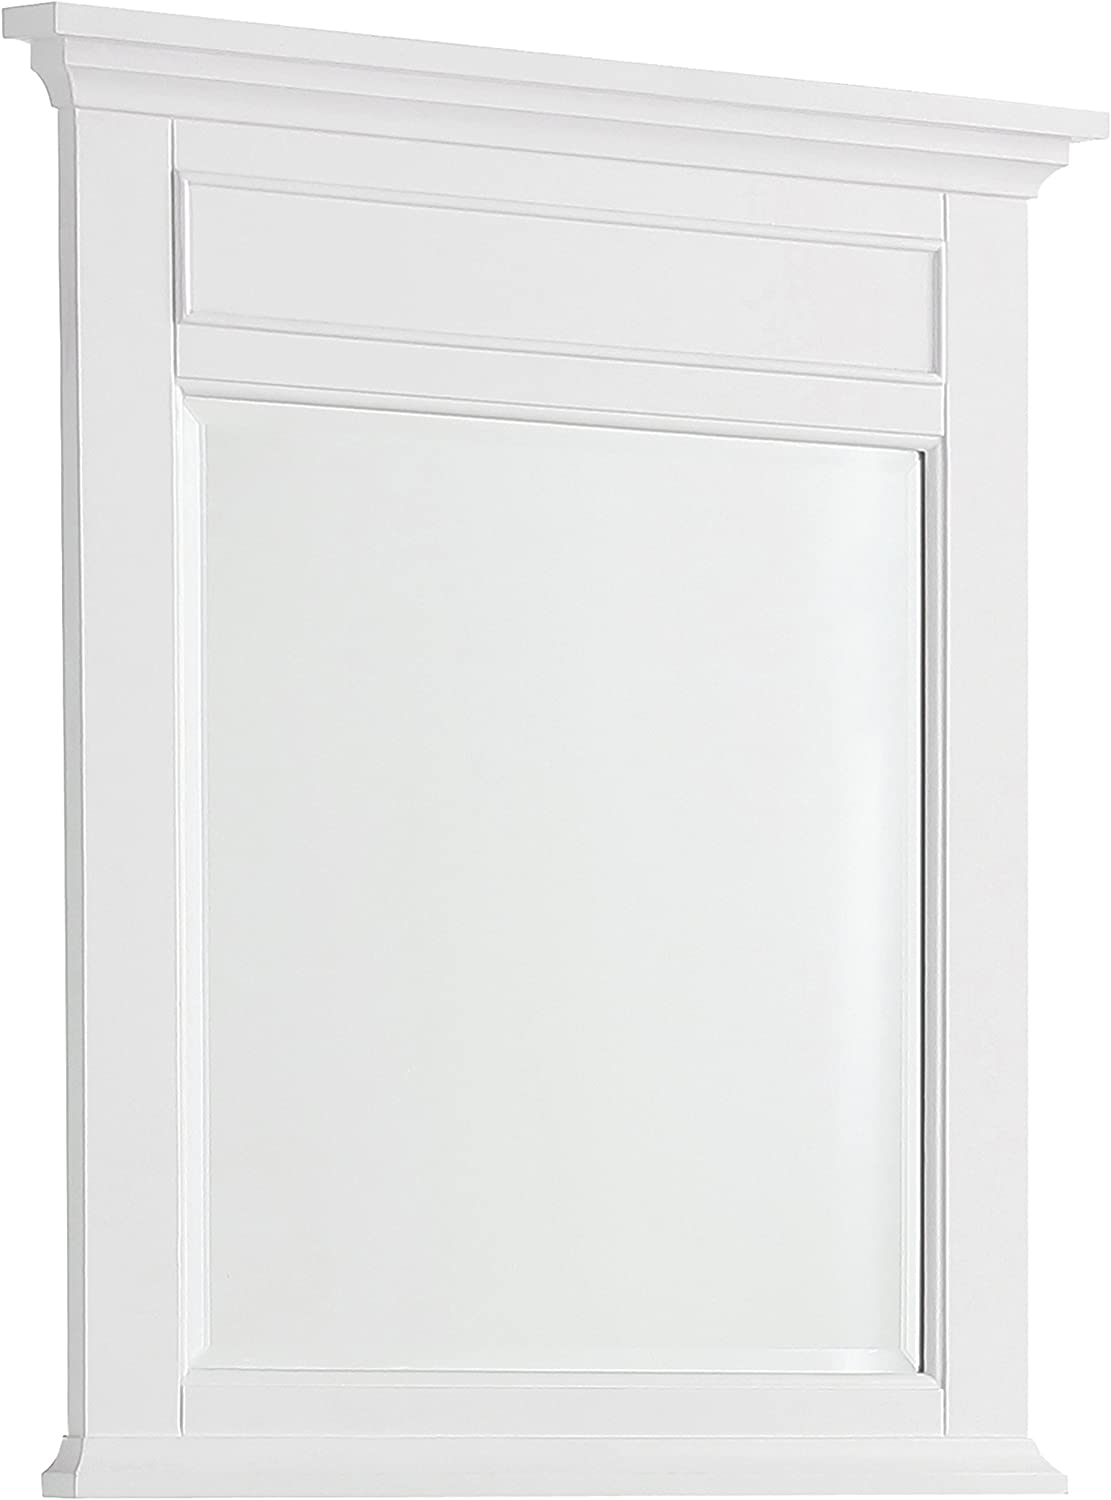 SIMPLIHOME Evan 30 inch x 34 inch Bath Vanity Décor Mirror in White